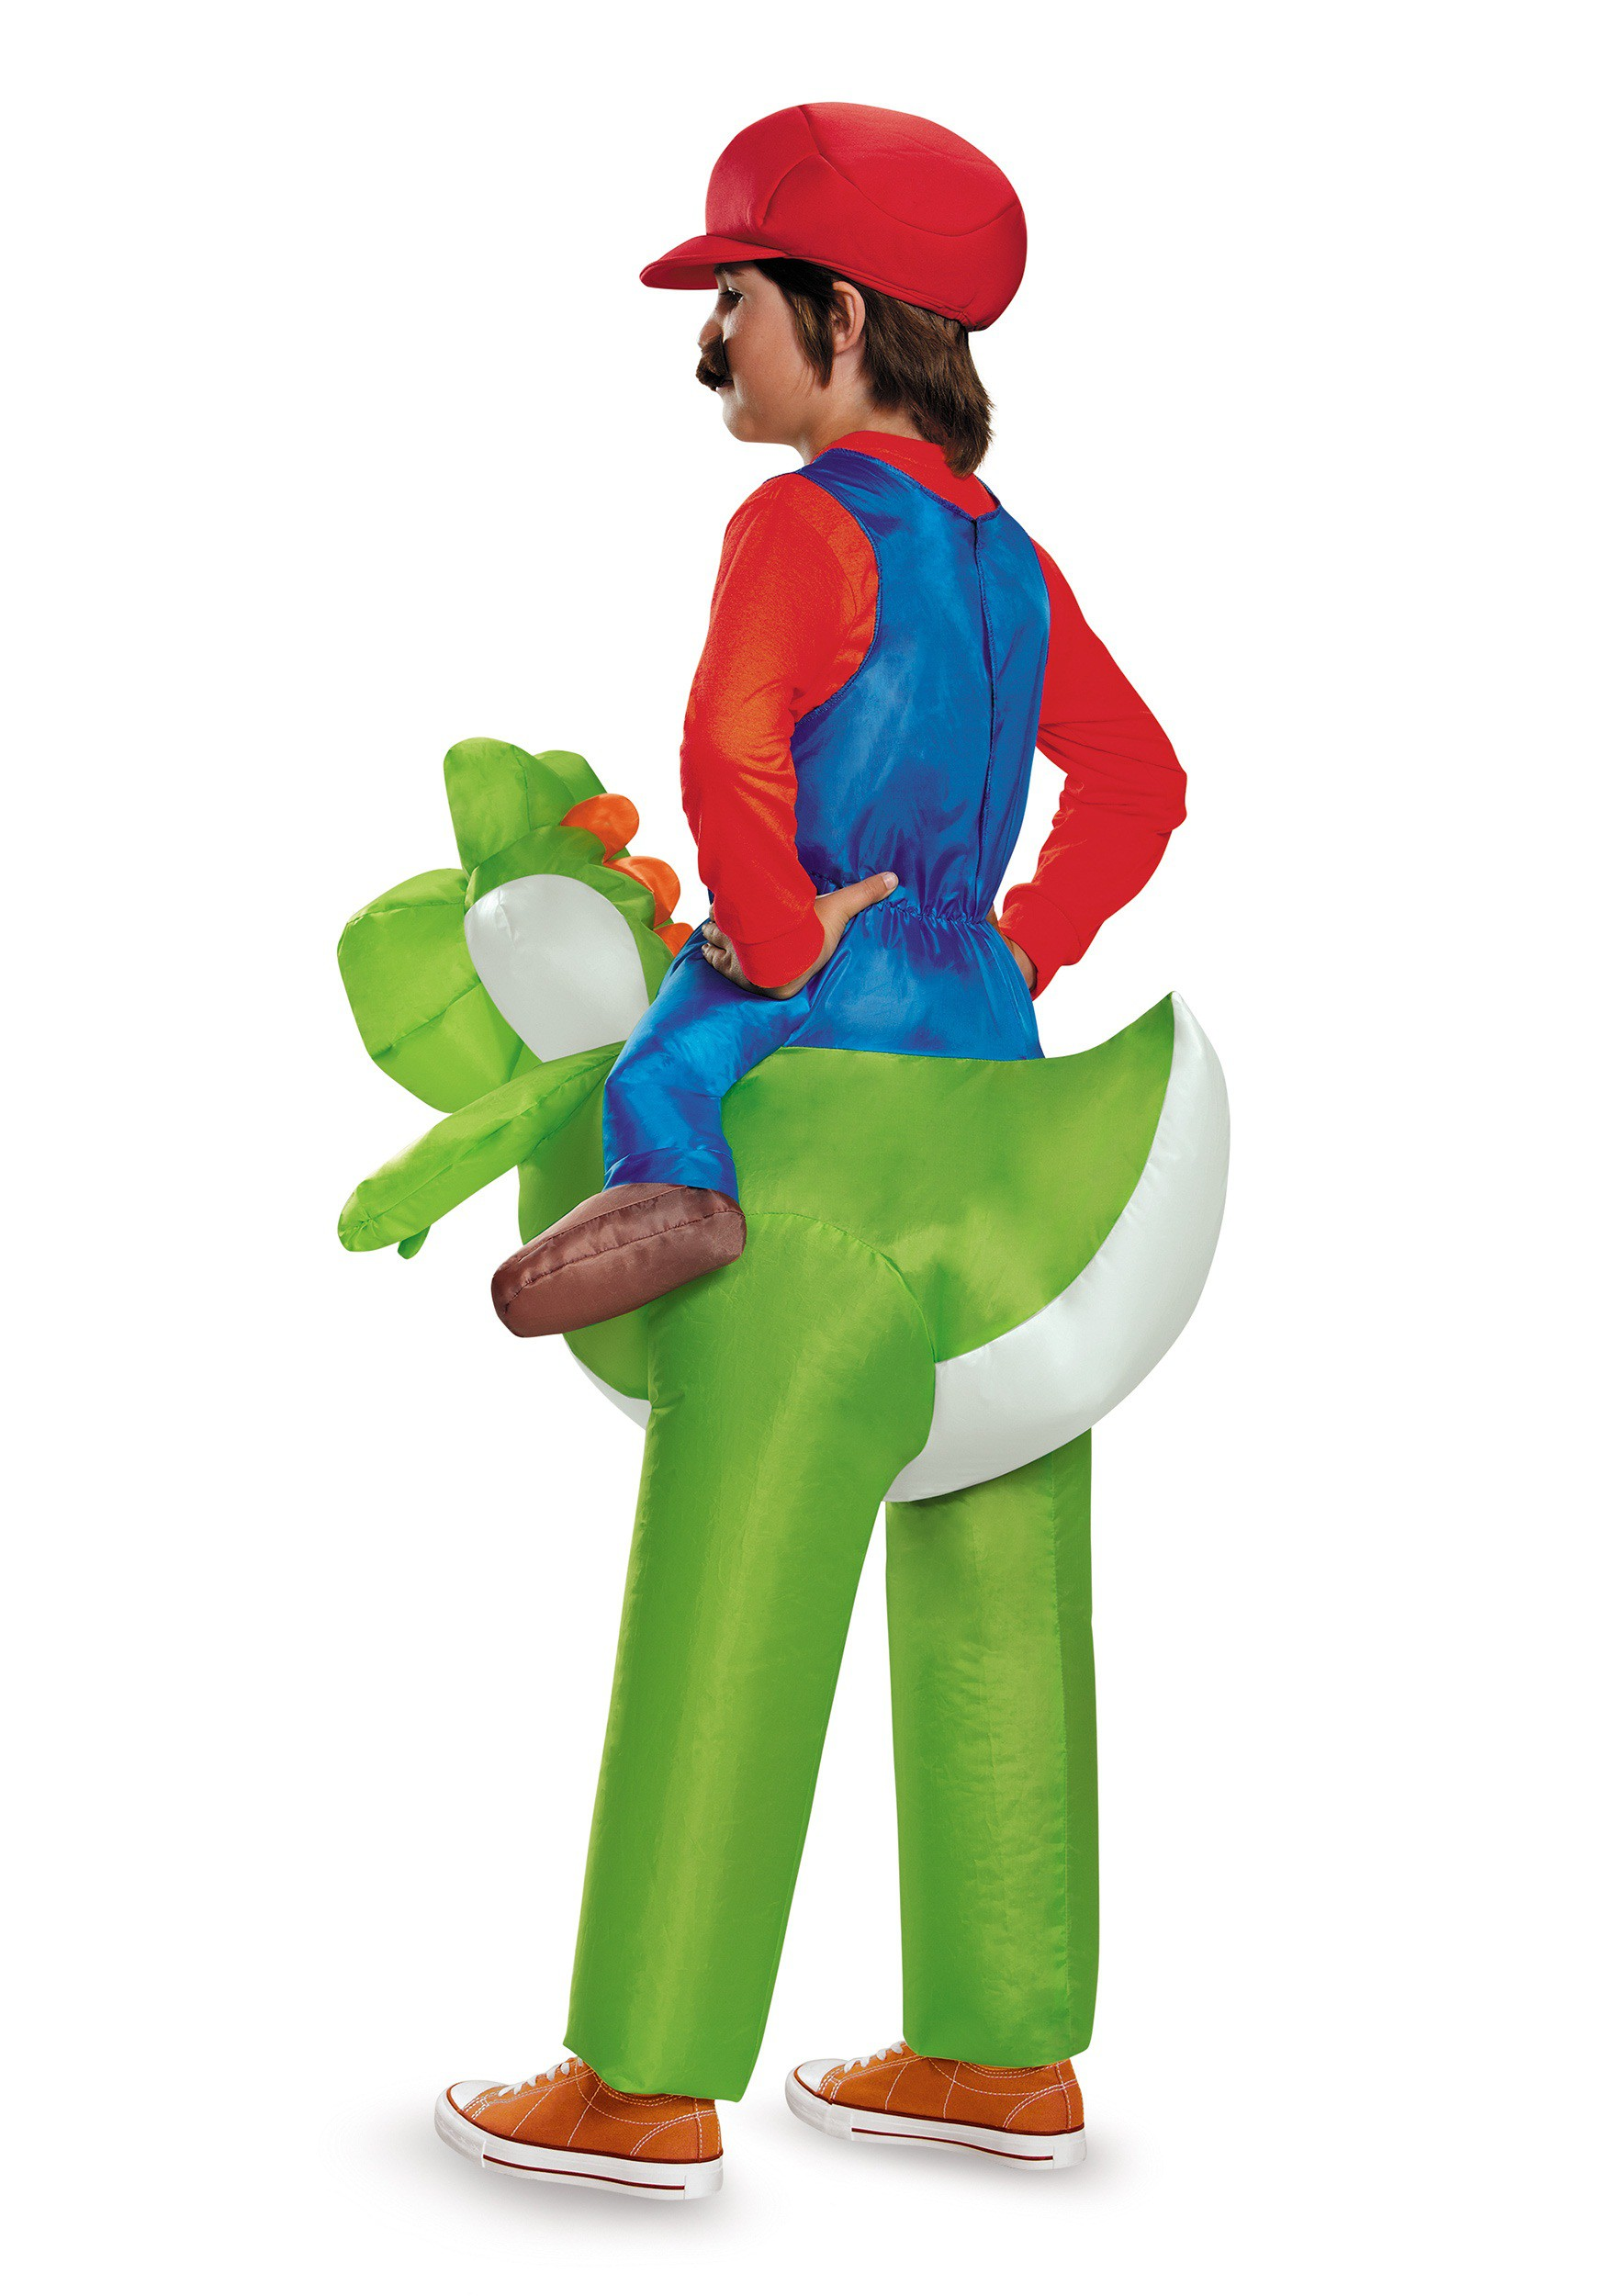 Mario Riding Yoshi Child Costume Mario Riding Yoshi Child Costume Alt1  sc 1 st  Halloween Costumes & Mario Riding Yoshi Child Costume